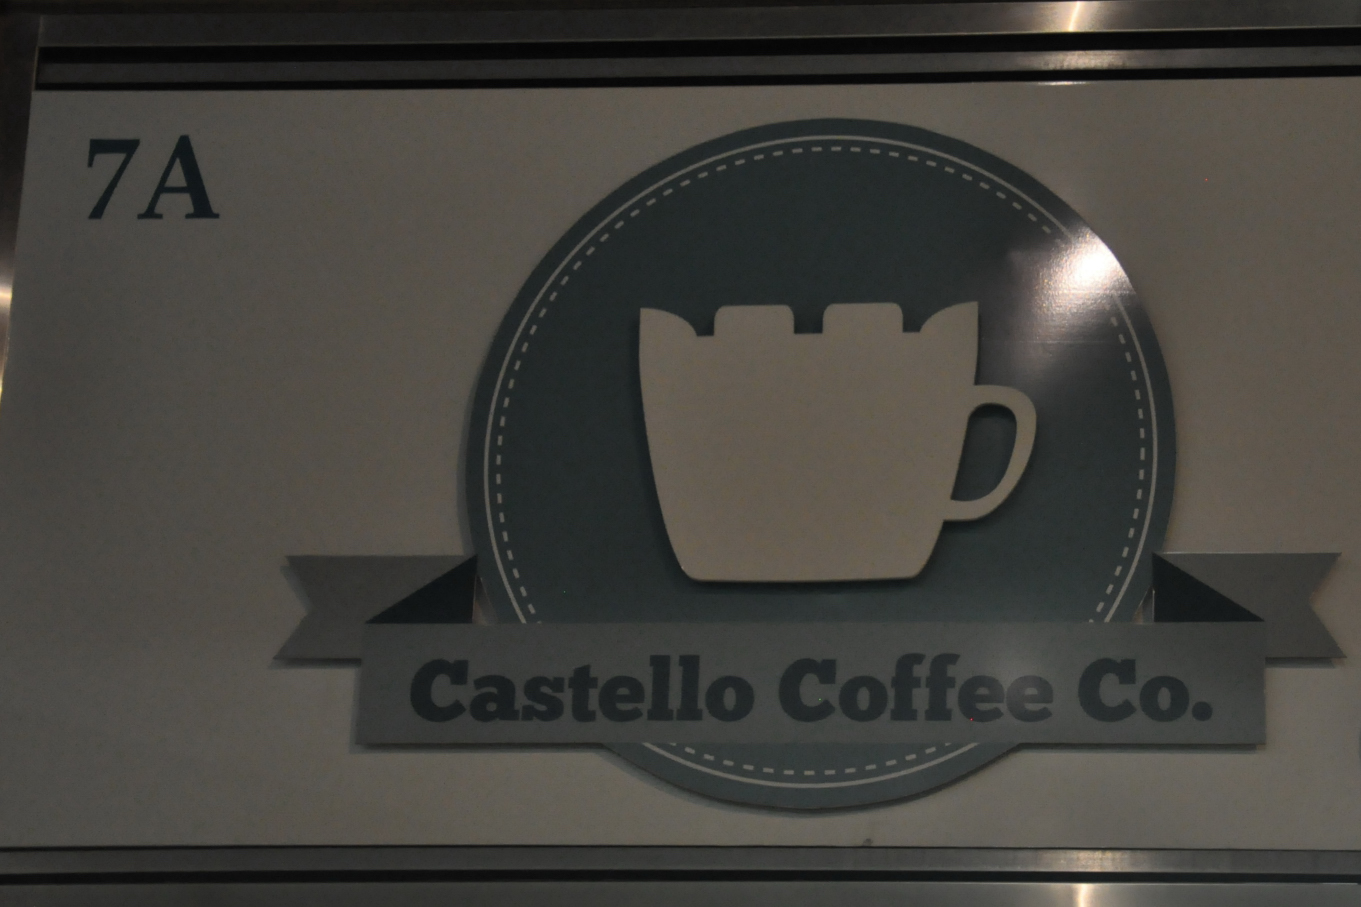 Castello Coffee's Logo at 7A Castle Street